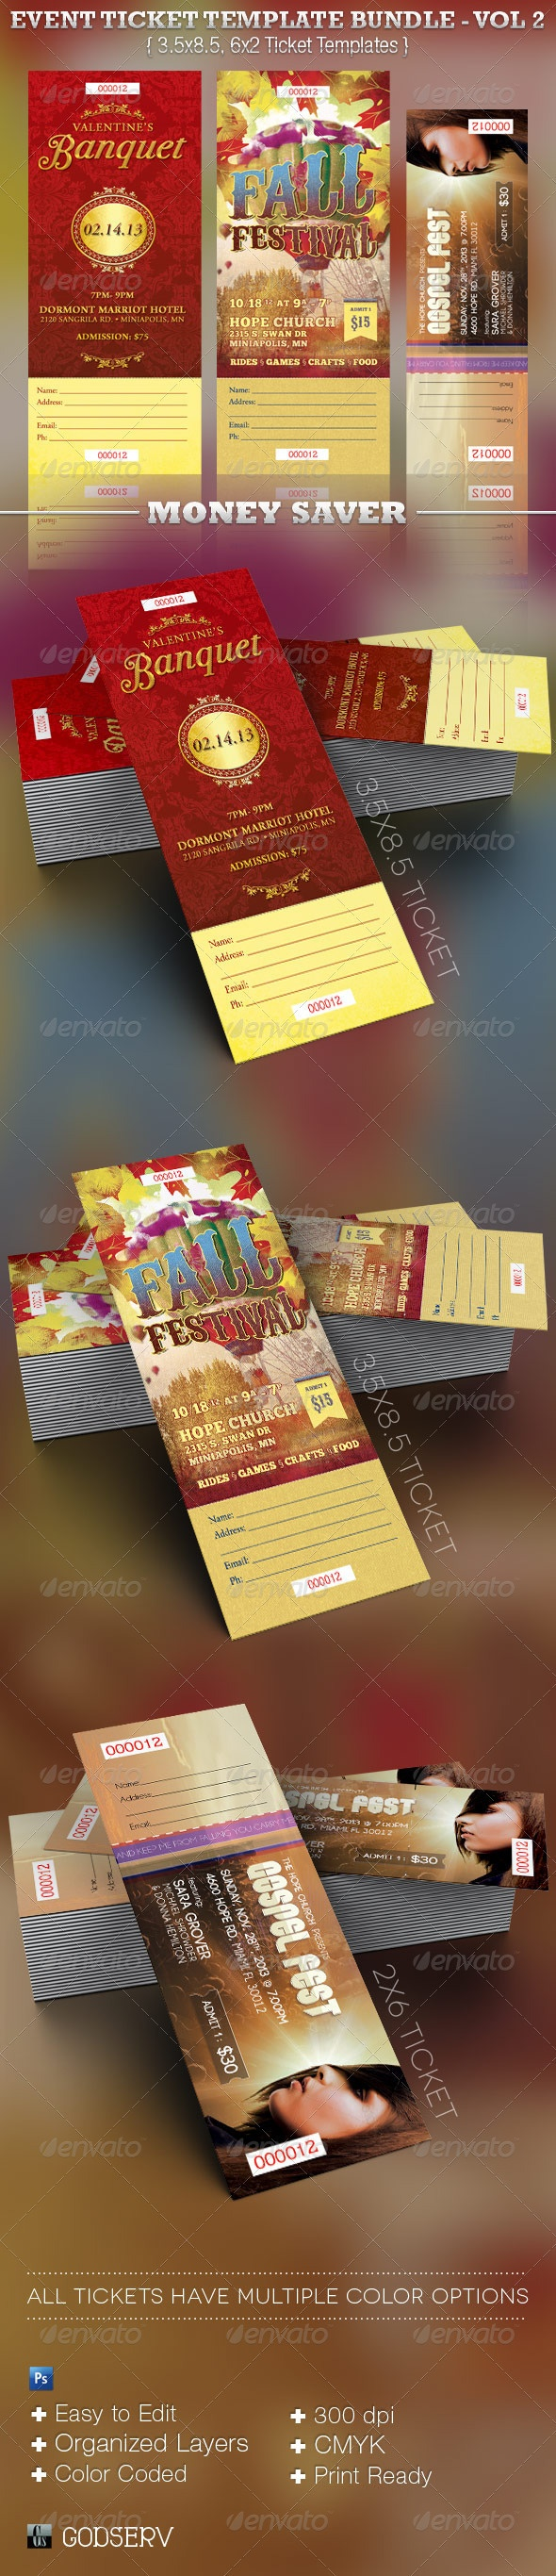 Food Tickets Template Pleasing 9 Best Conga Chic Images On Pinterest  Brochures Design Posters .